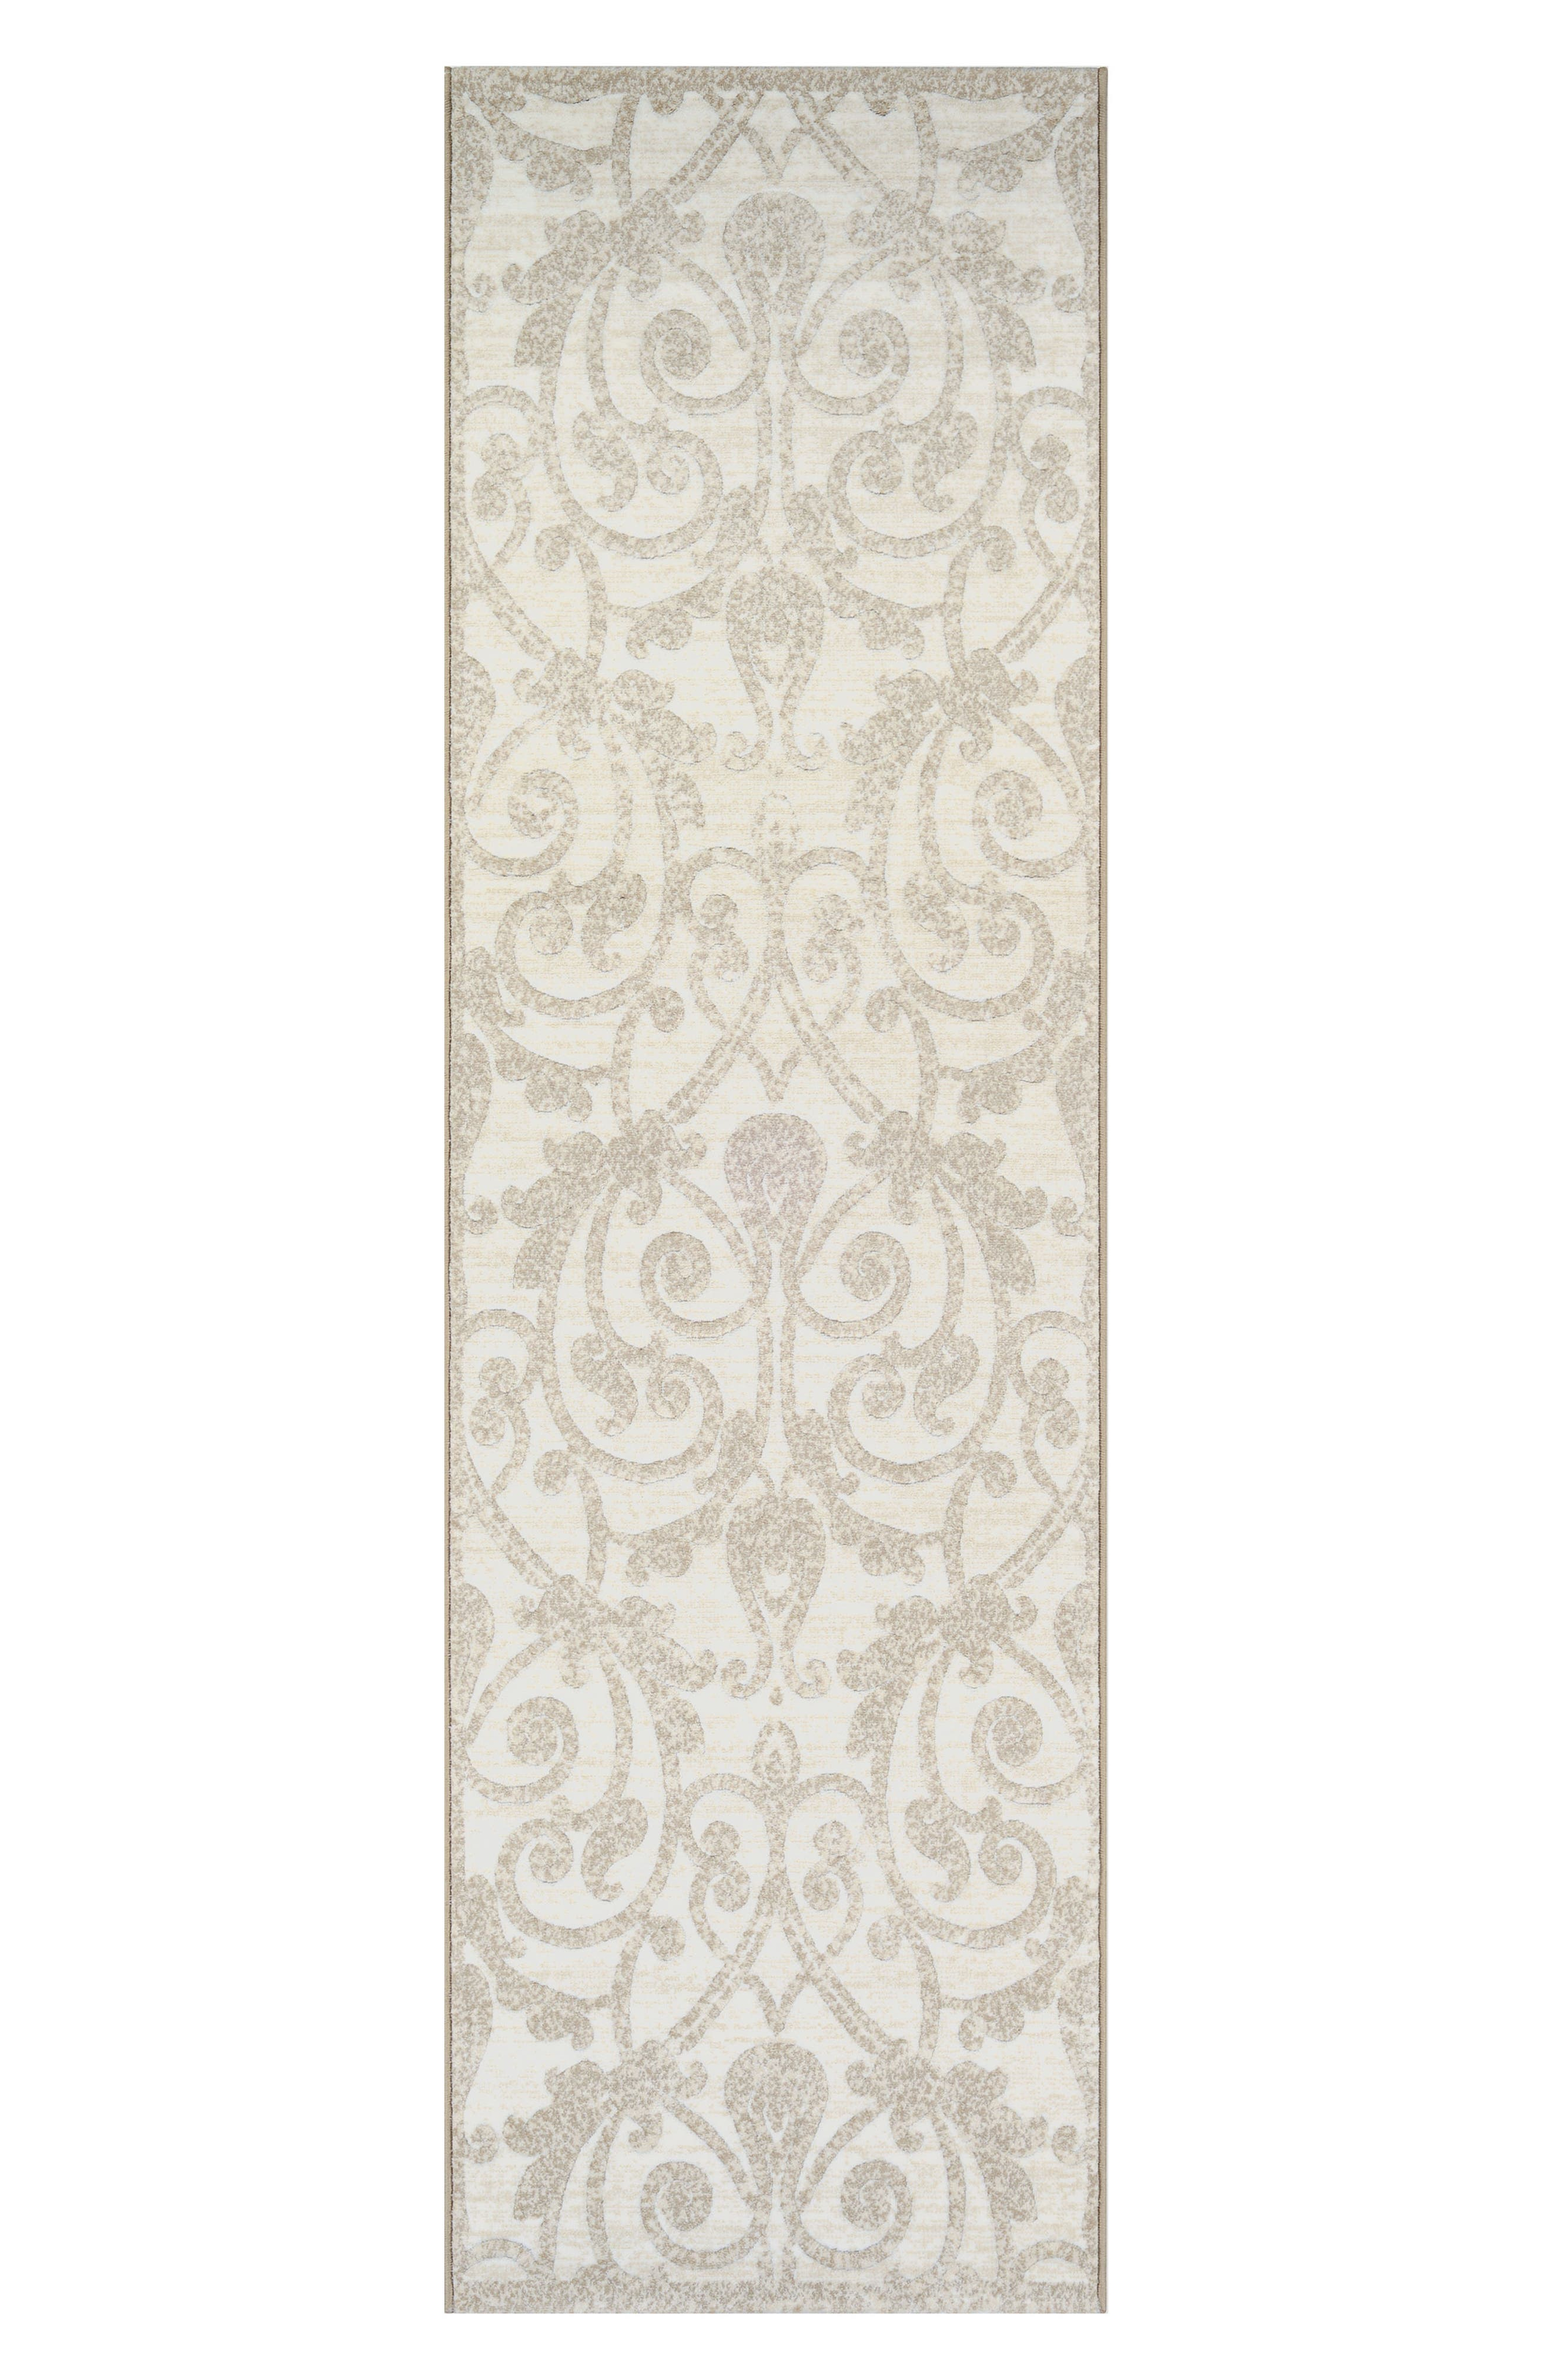 Marina Cannes Area Rug,                             Alternate thumbnail 2, color,                             250